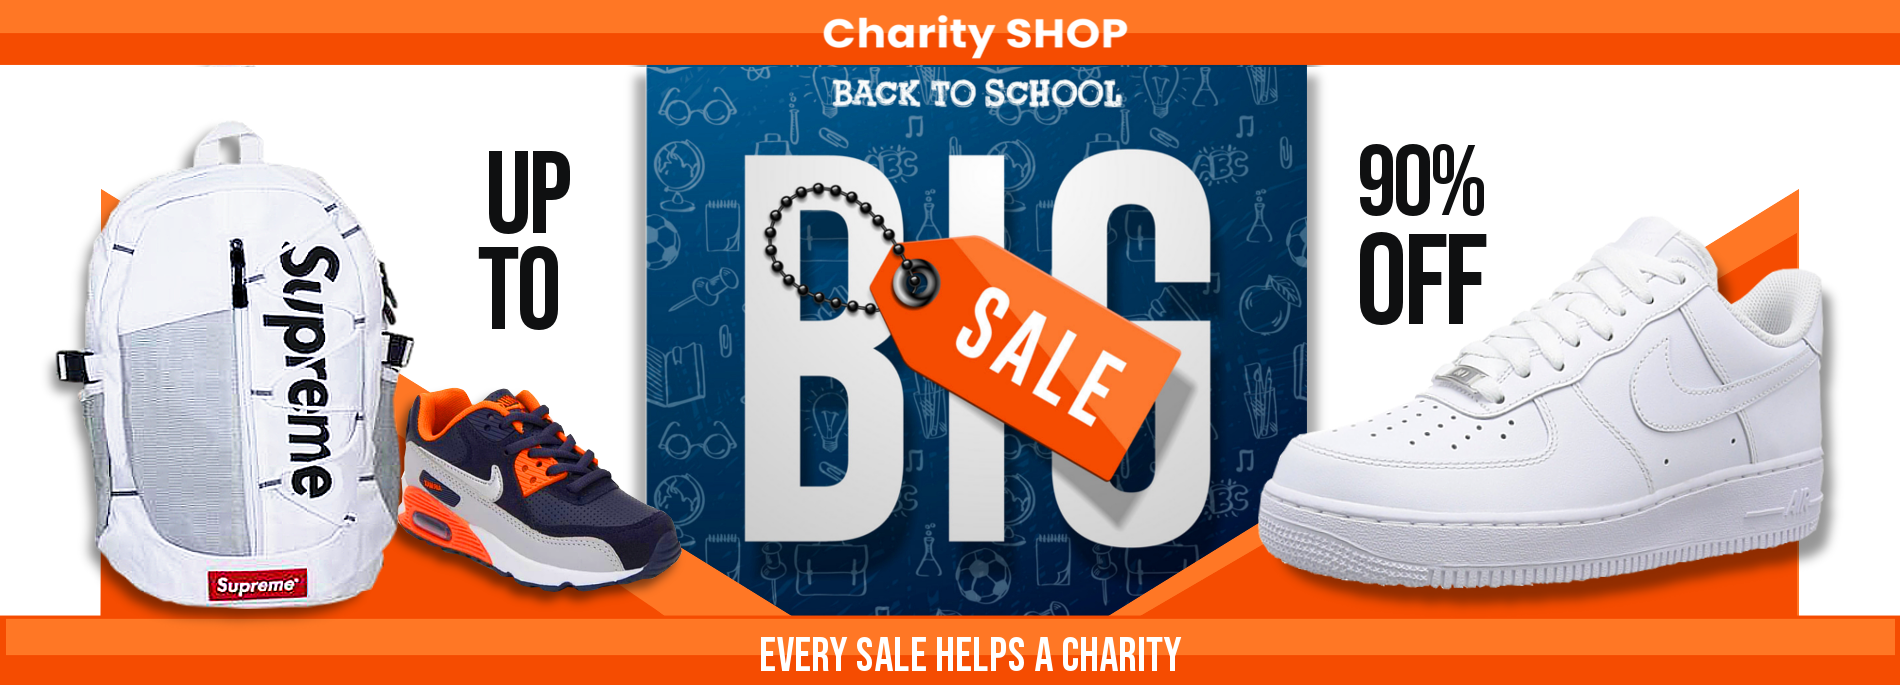 back to school sale that helps charity